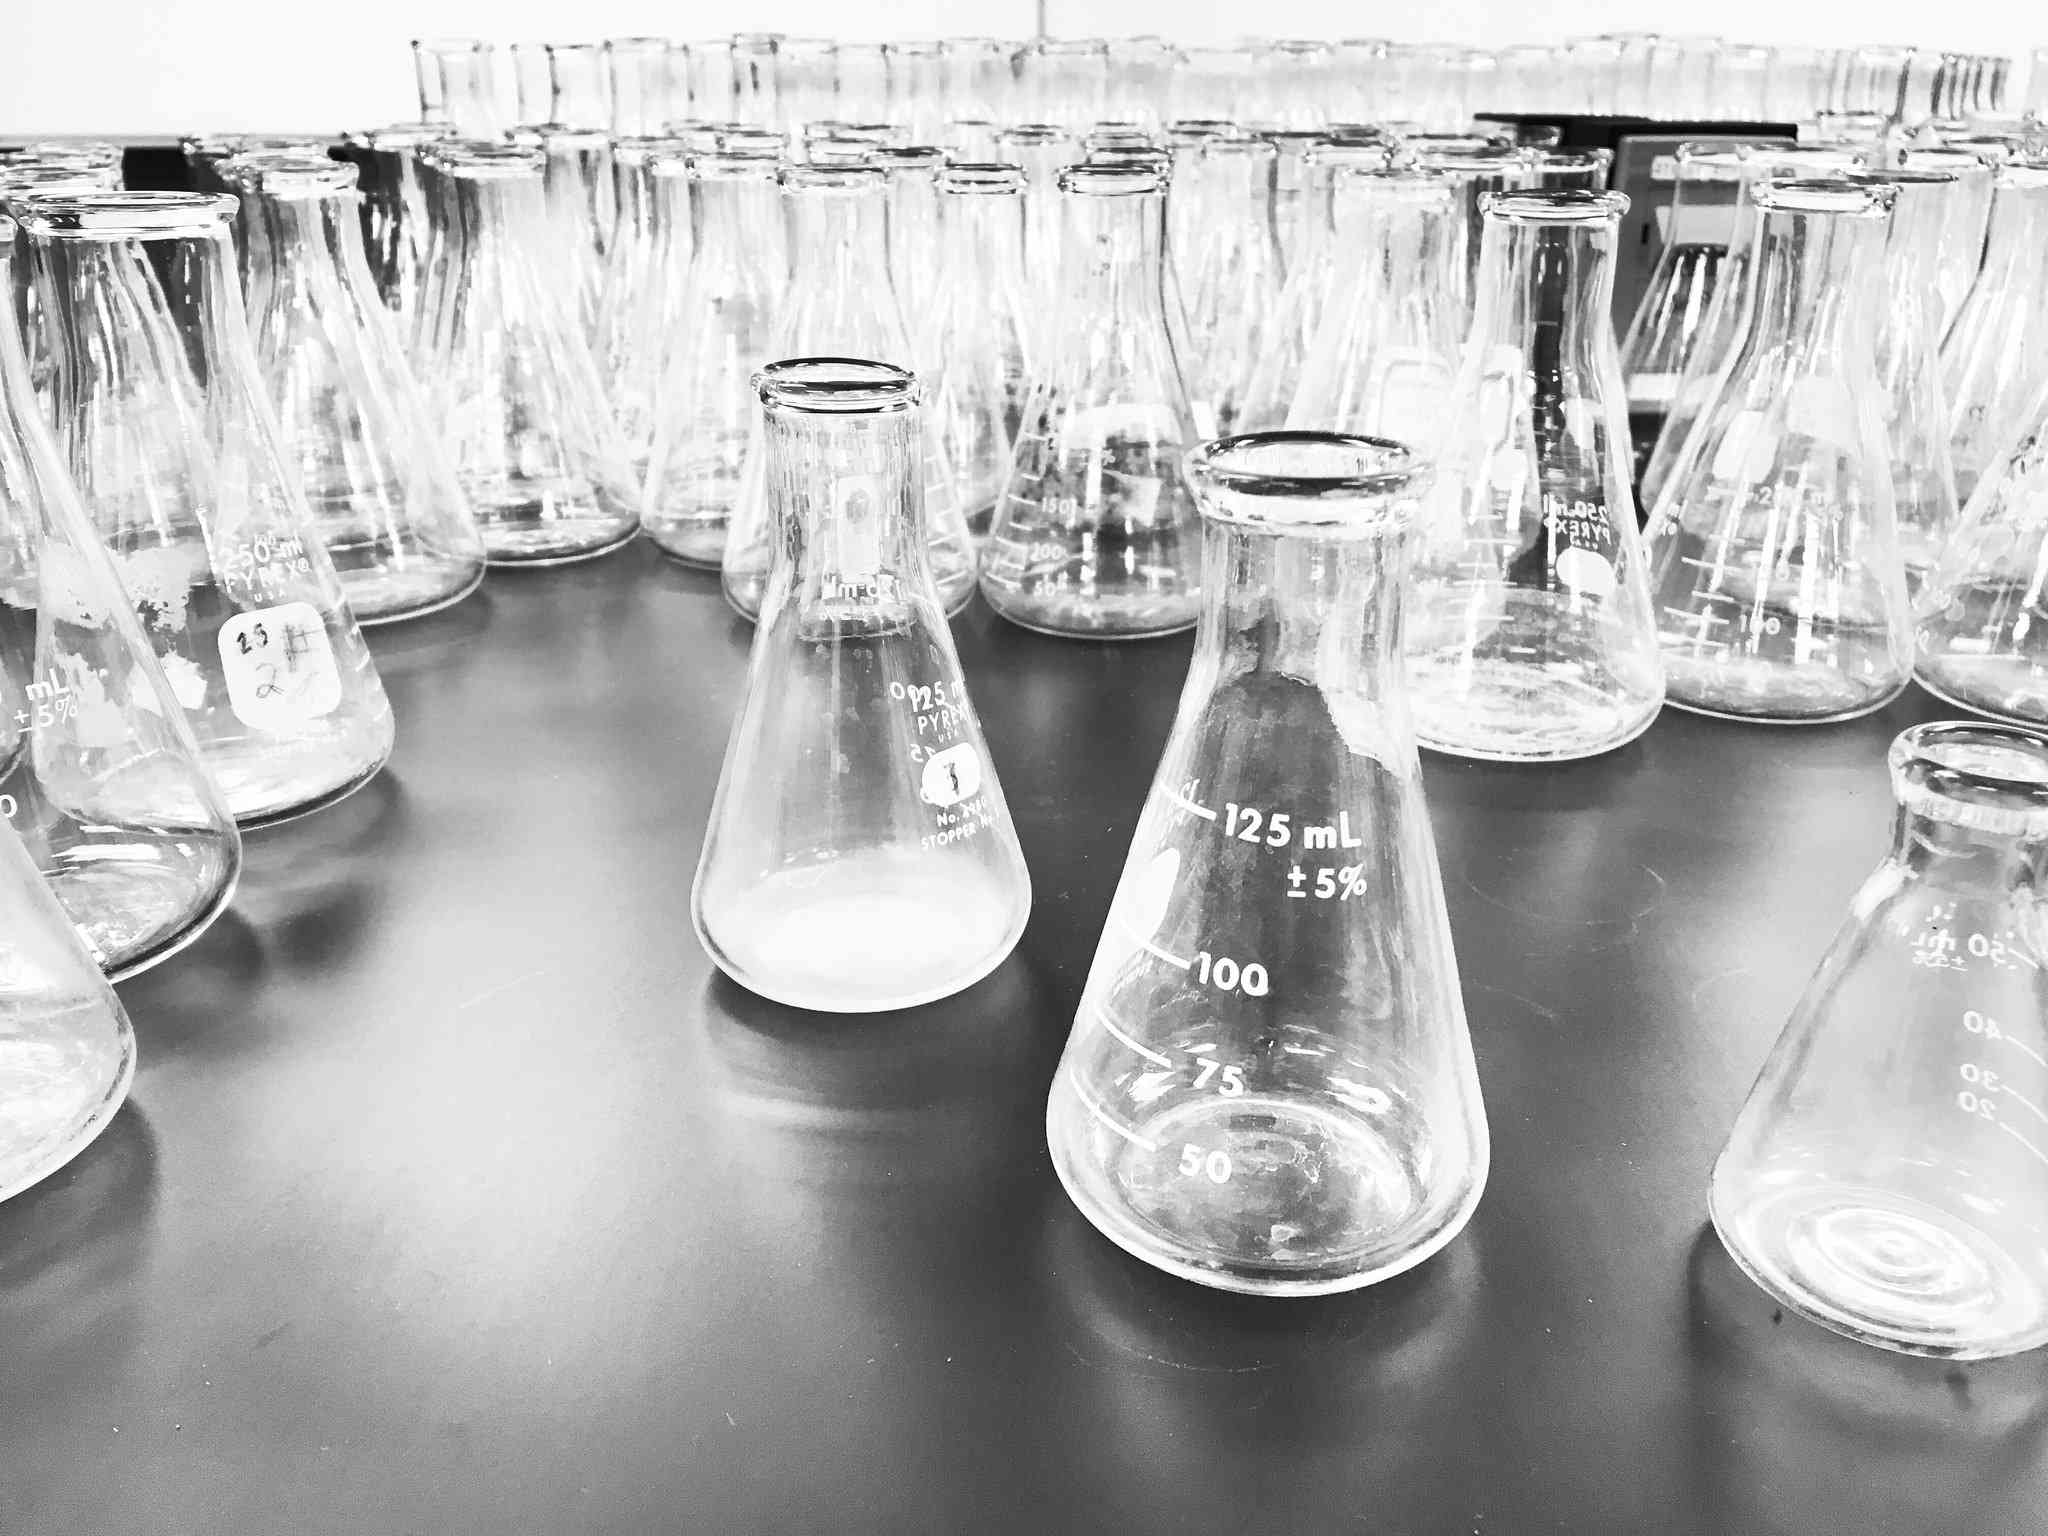 Multiple beakers on a gray table.